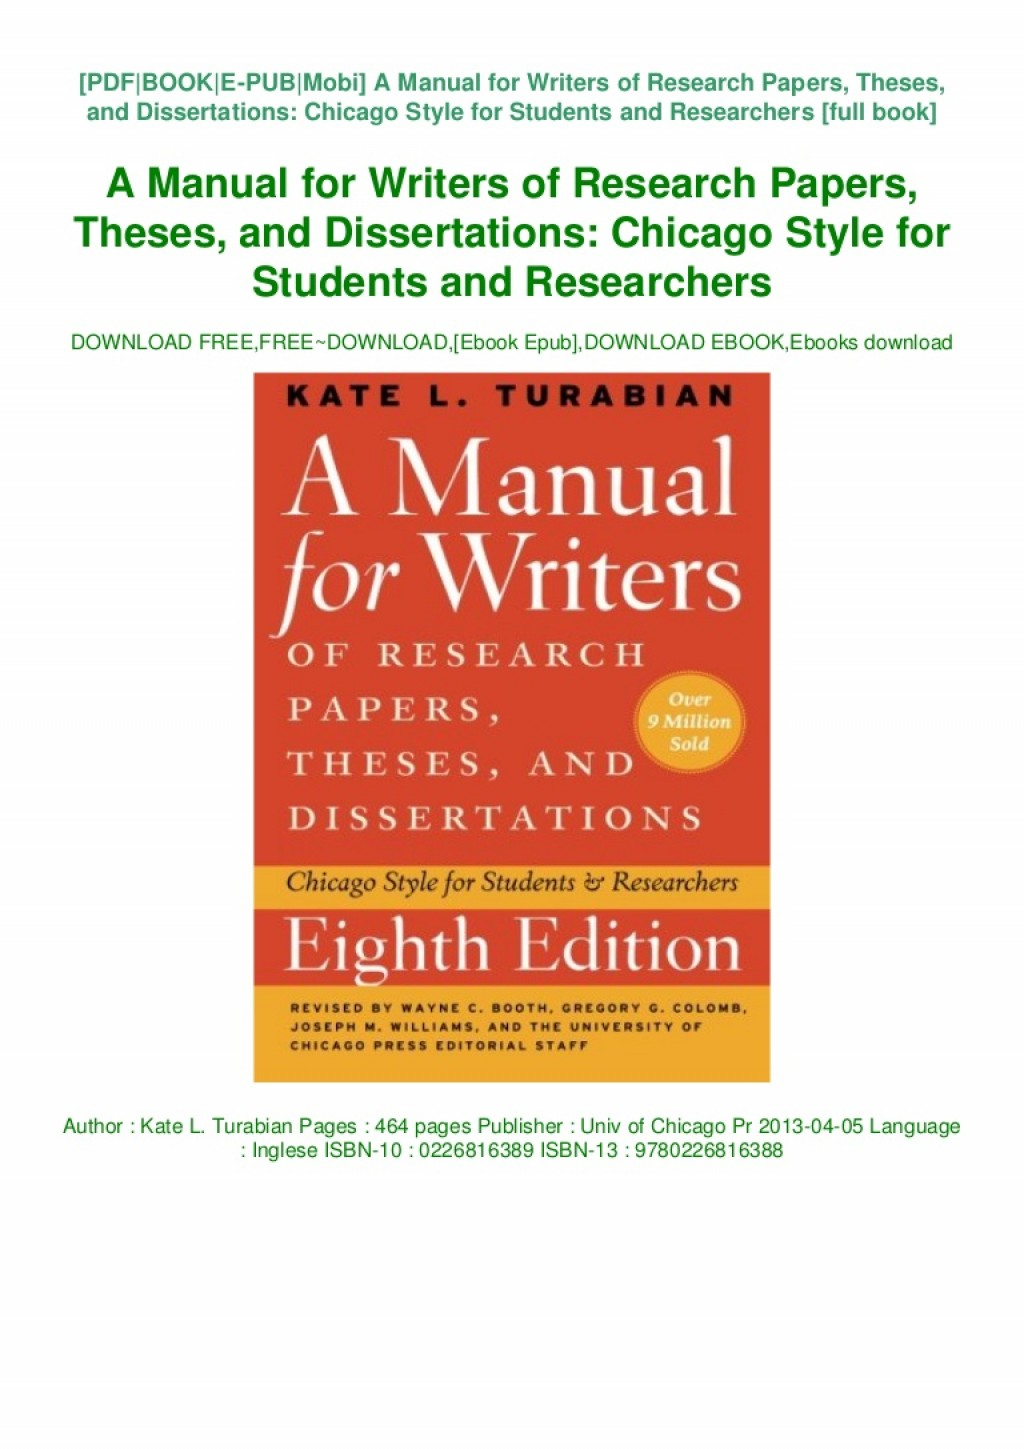 005 Manual For Writers Of Research Papers Theses And Dissertations Turabian Paper Book Thumbnail Amazing A Pdf Large